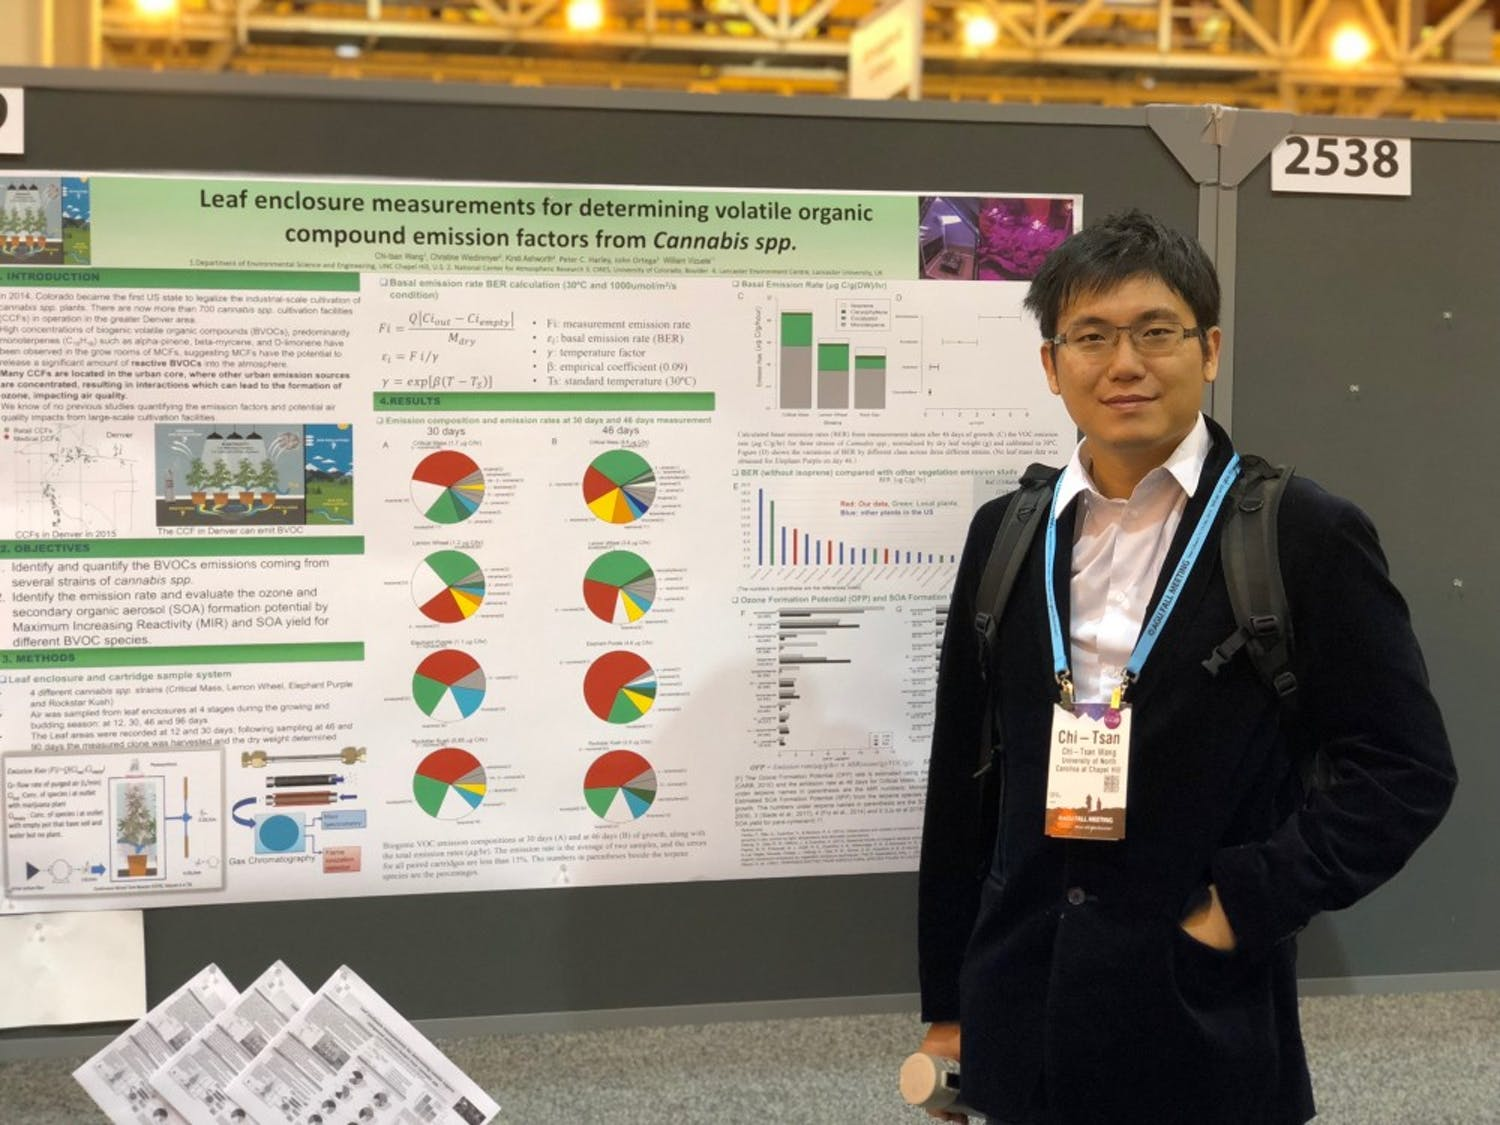 Chi-Tsan Wang stands in front of his research findings at the American Geophysical Union Fall Meeting on Dec. 13, 2017 in New Orleans. Photo courtesy of Chi-Tsan Wang.